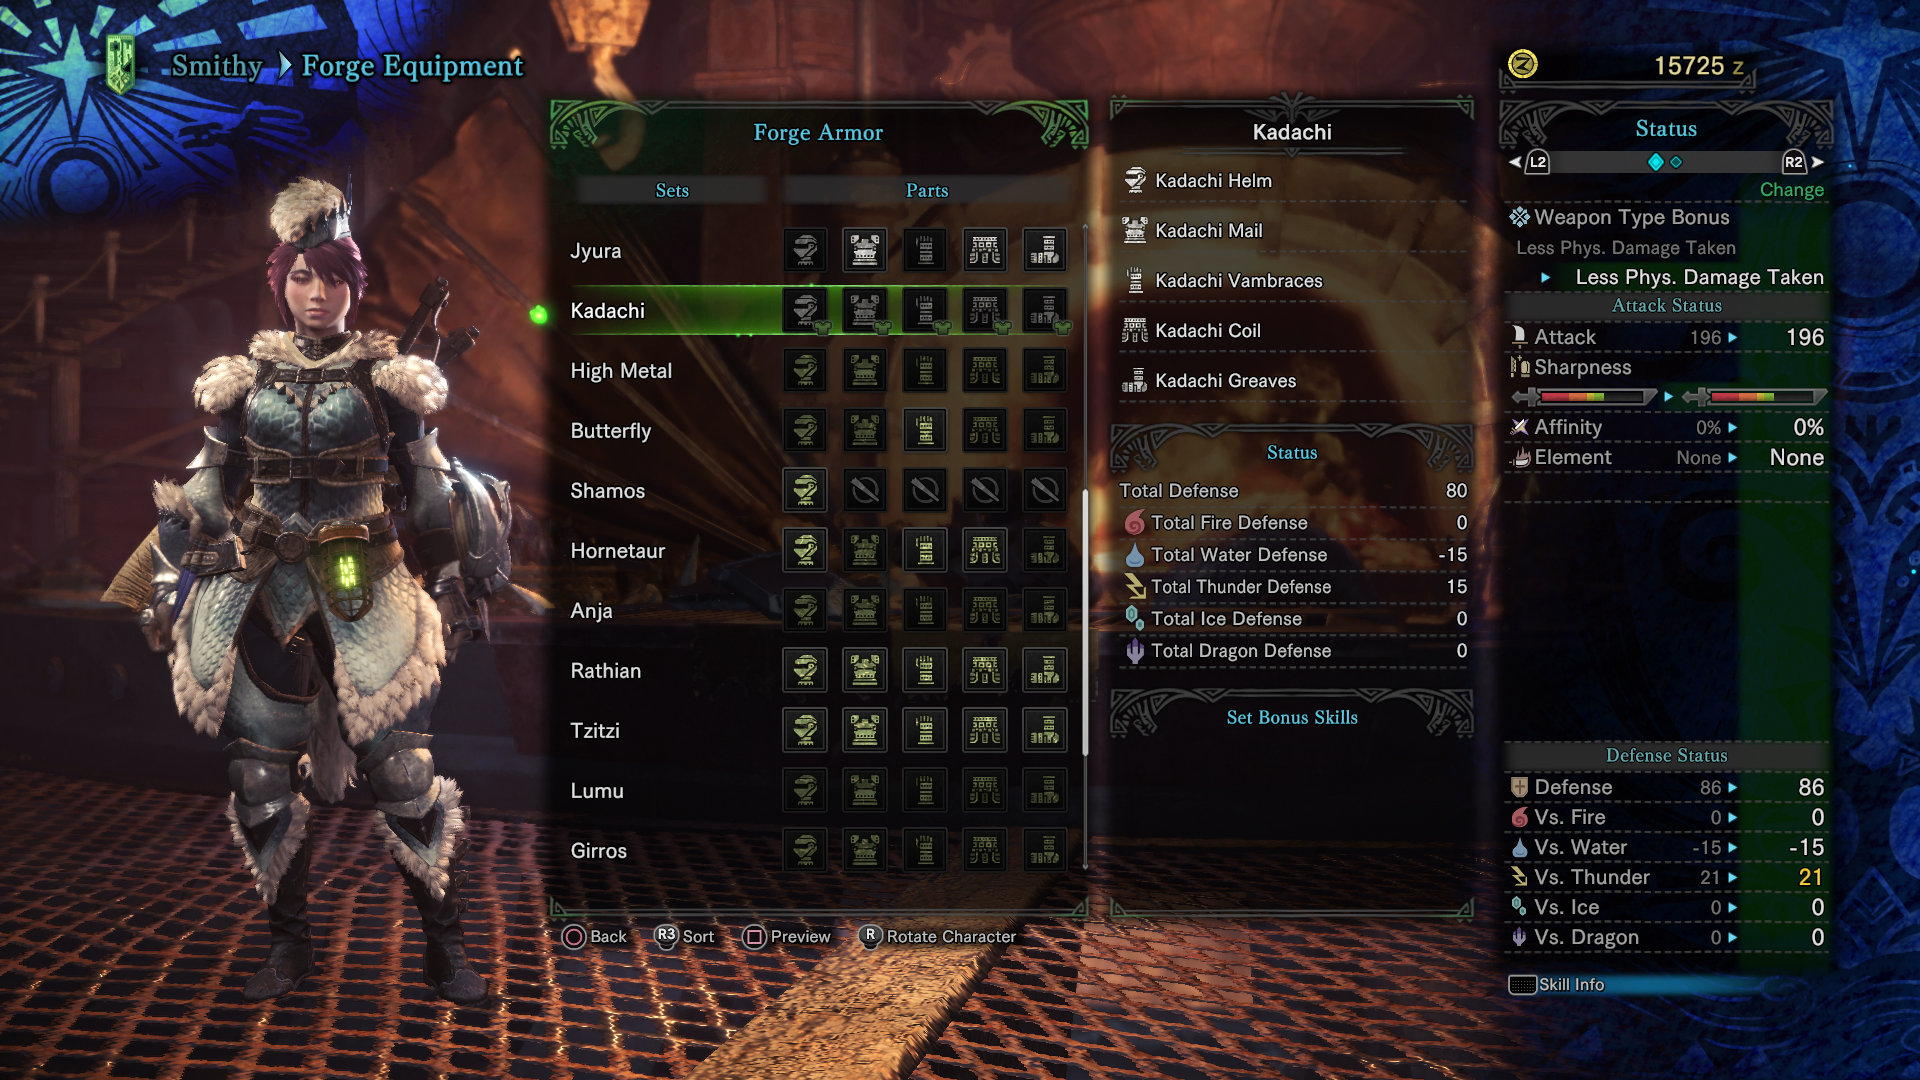 Monster Hunter World Armor - How to Forge and Upgrade Armor, The